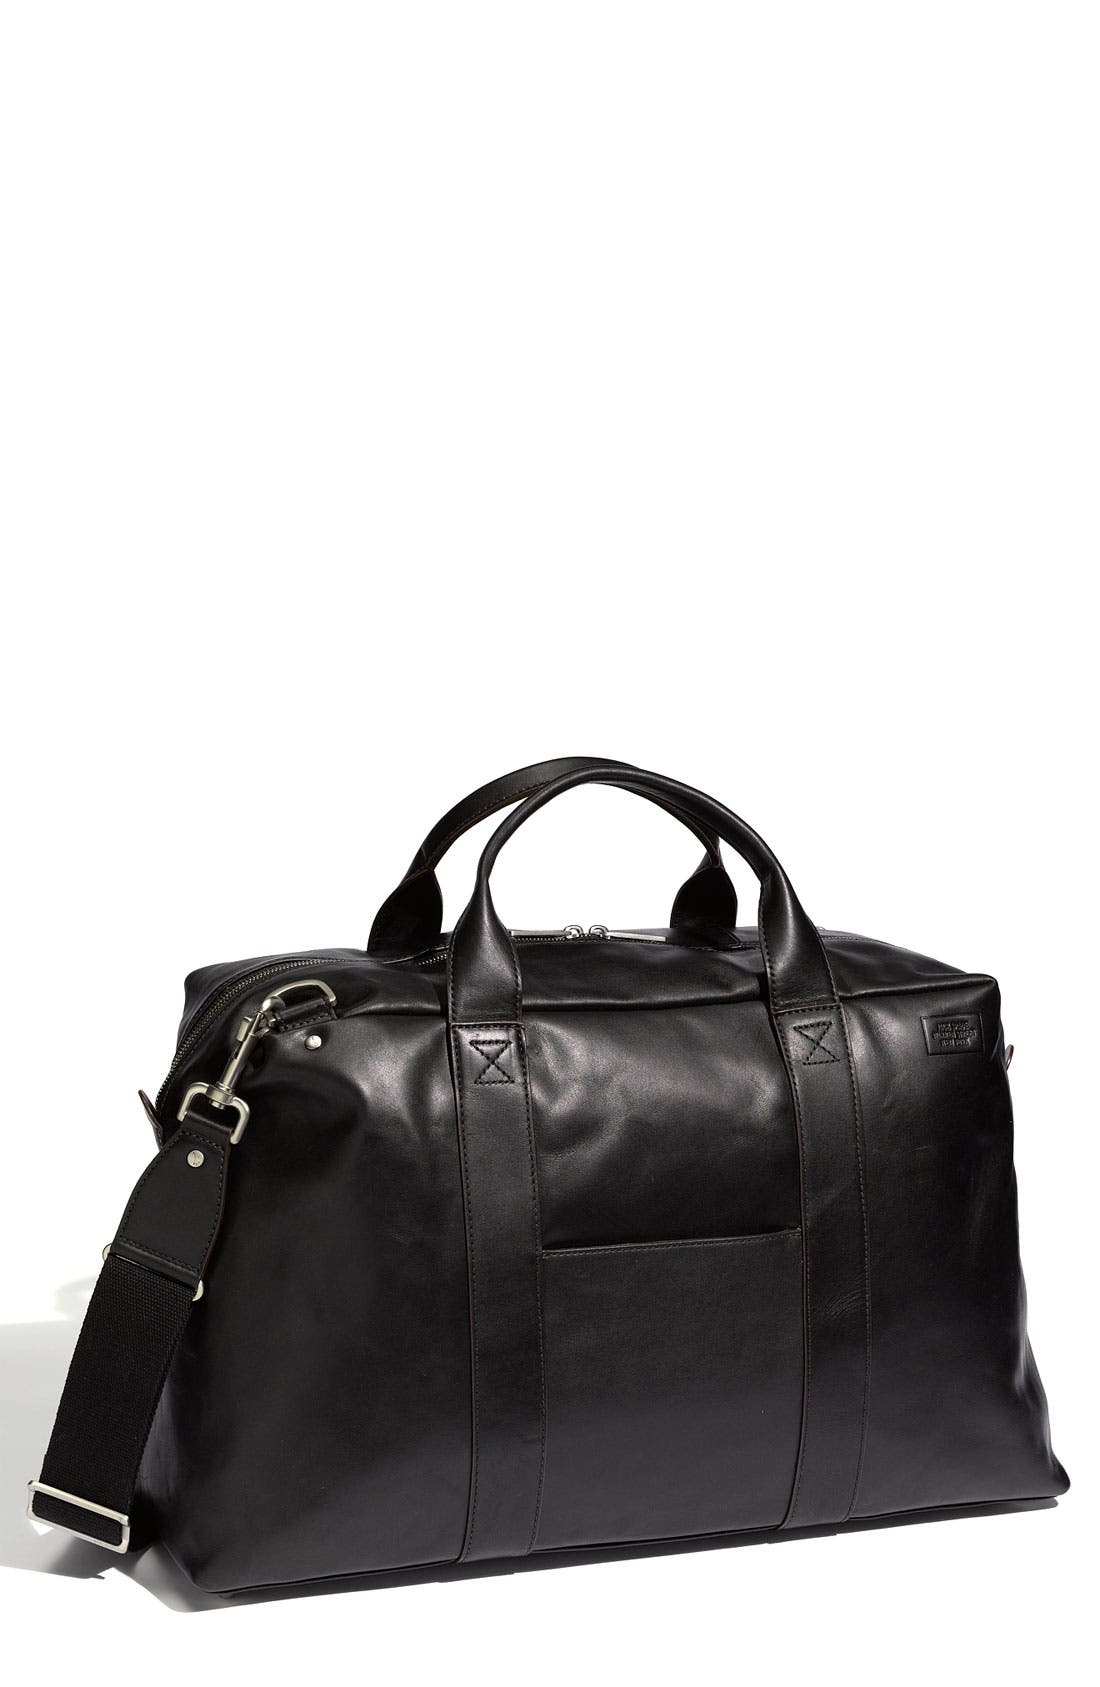 Alternate Image 1 Selected - Jack Spade 'Wayne' Leather Duffel Bag